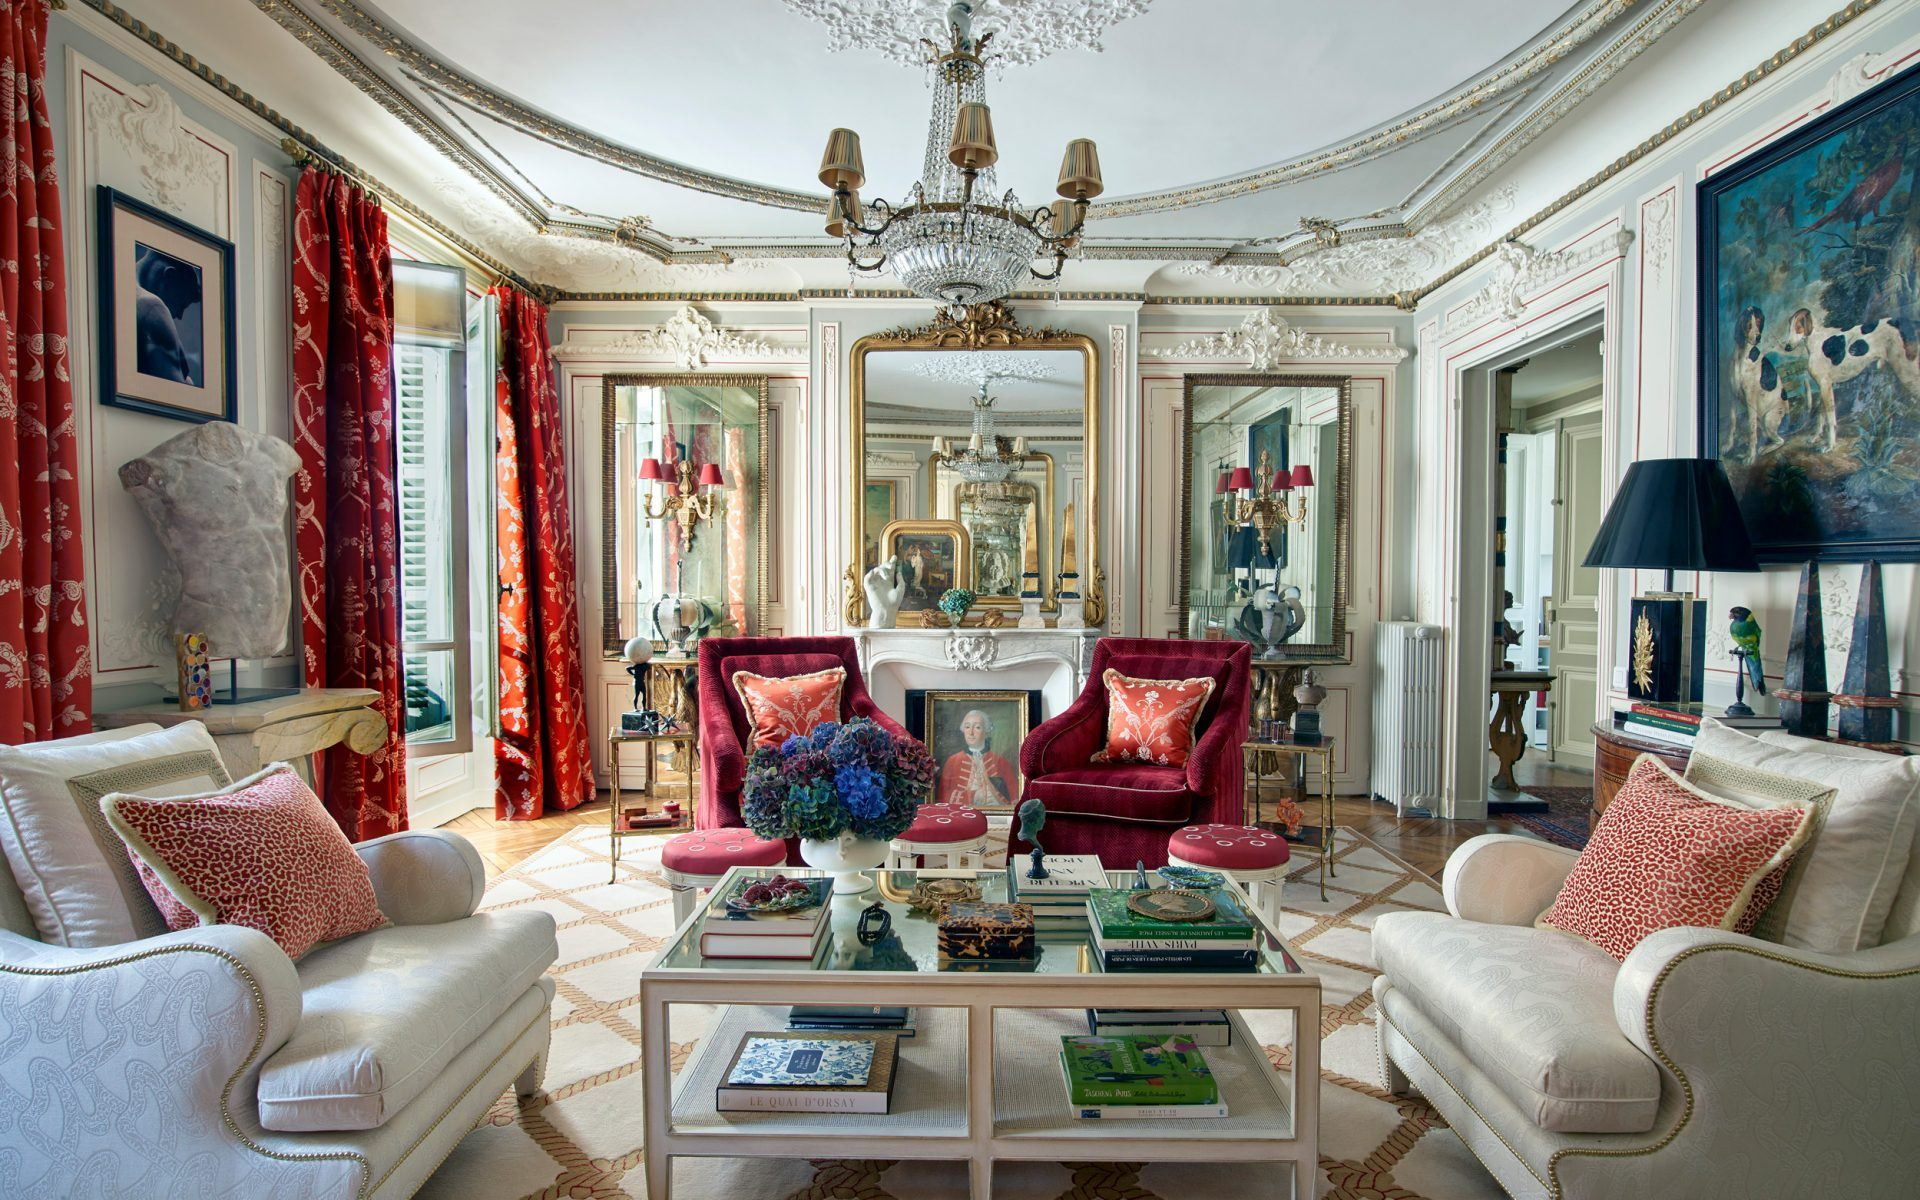 A room in Timothy Corrigan's new book by Rizzoli features a play of reflections with multiple mirrors. The seating and cocktail tables are from Corrigan's furniture collection for Schumacher, and the rug is one he designed for Patterson Flynn Martin. Photo: Richard Powers